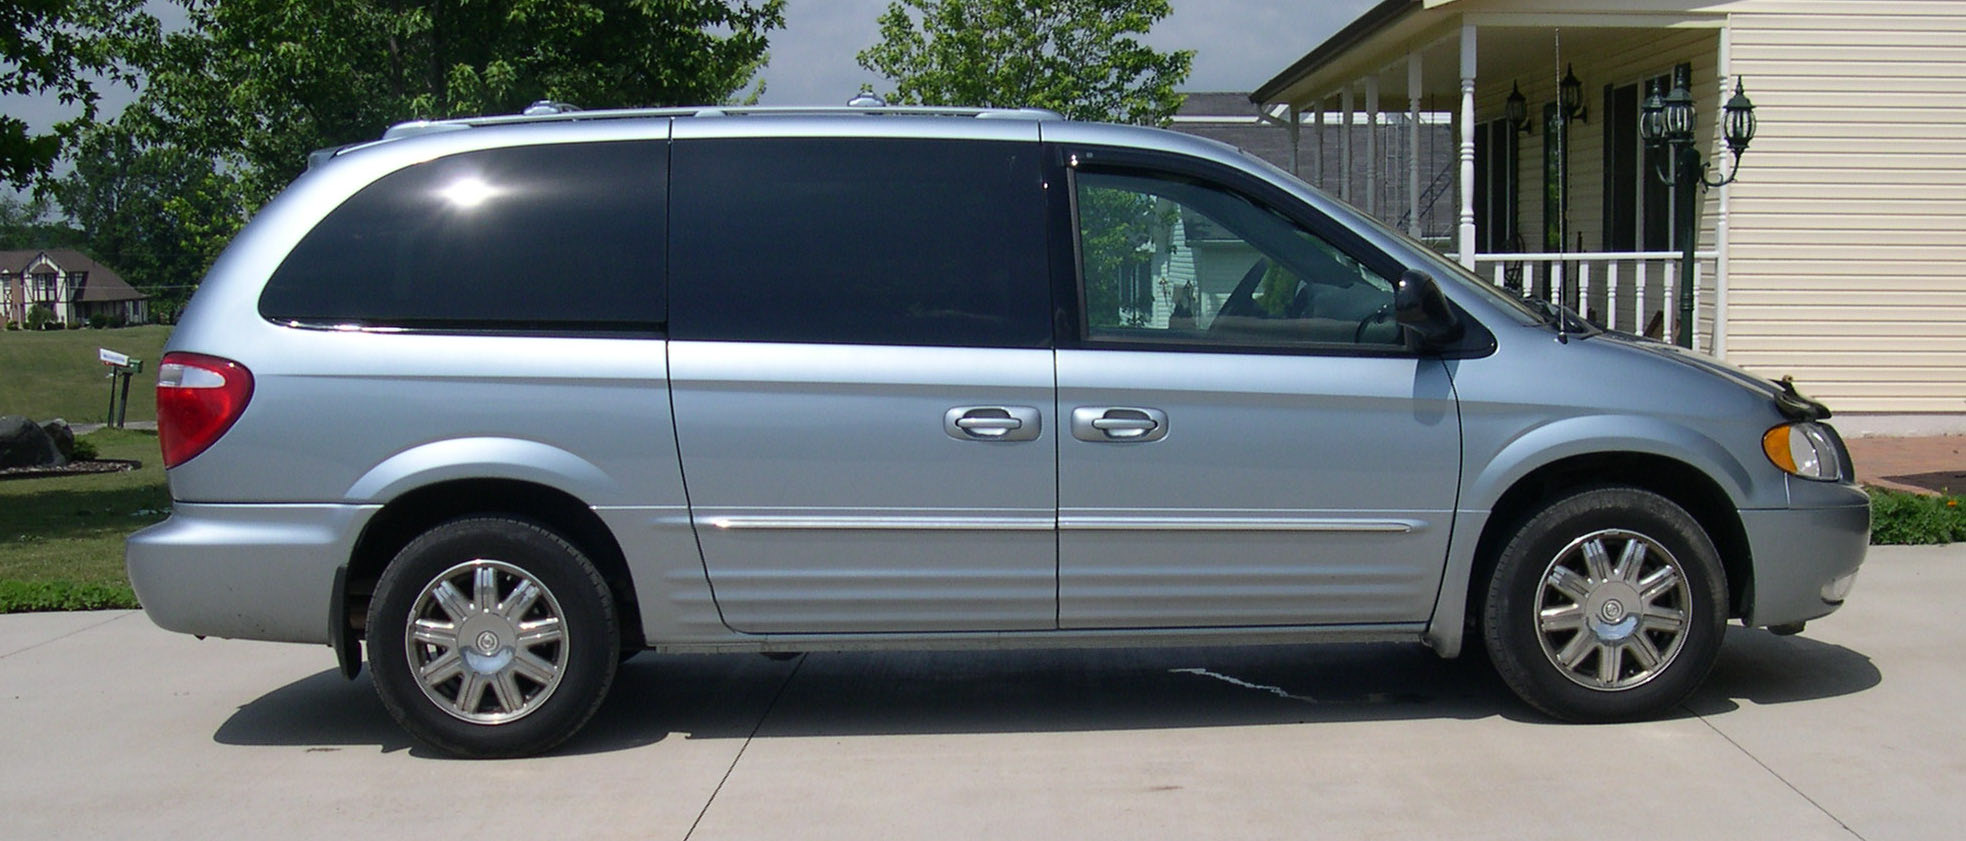 2004 chrysler town and country information and photos momentcar. Black Bedroom Furniture Sets. Home Design Ideas